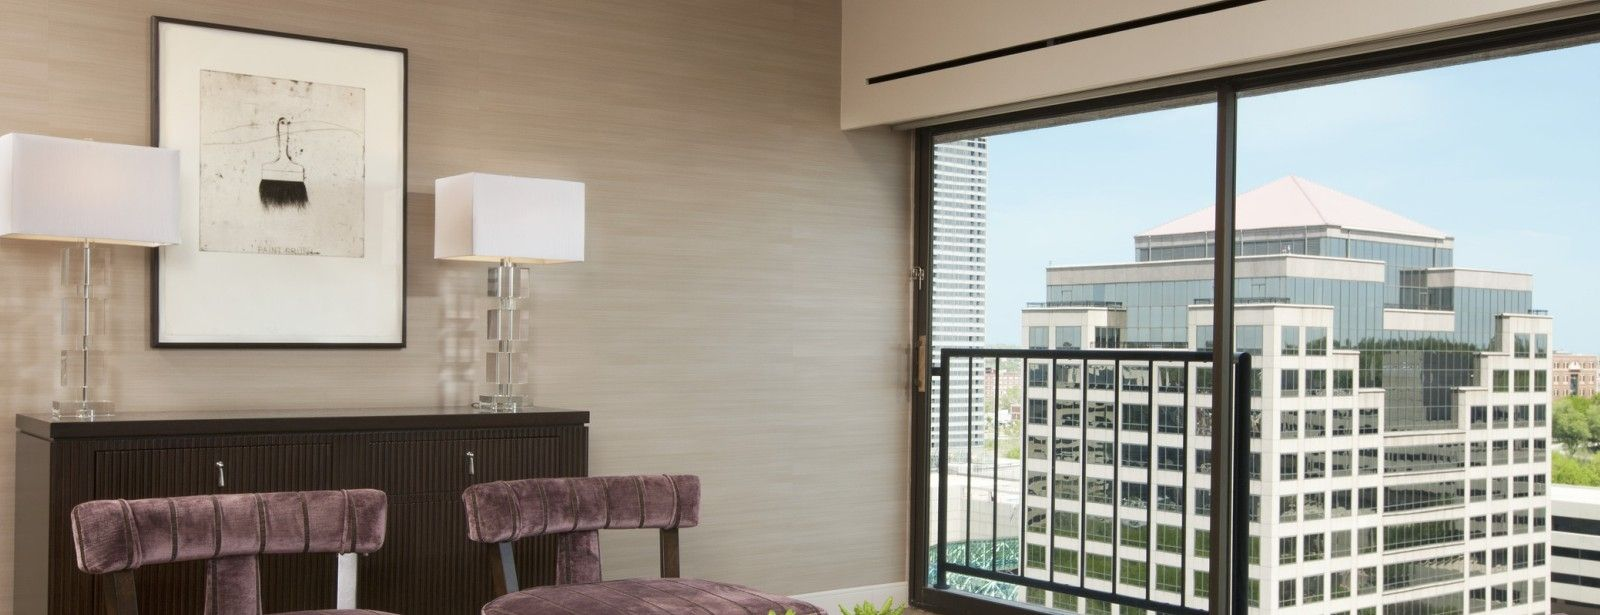 Presidential Suite | The Westin Kansas City Hotel at Crown Center